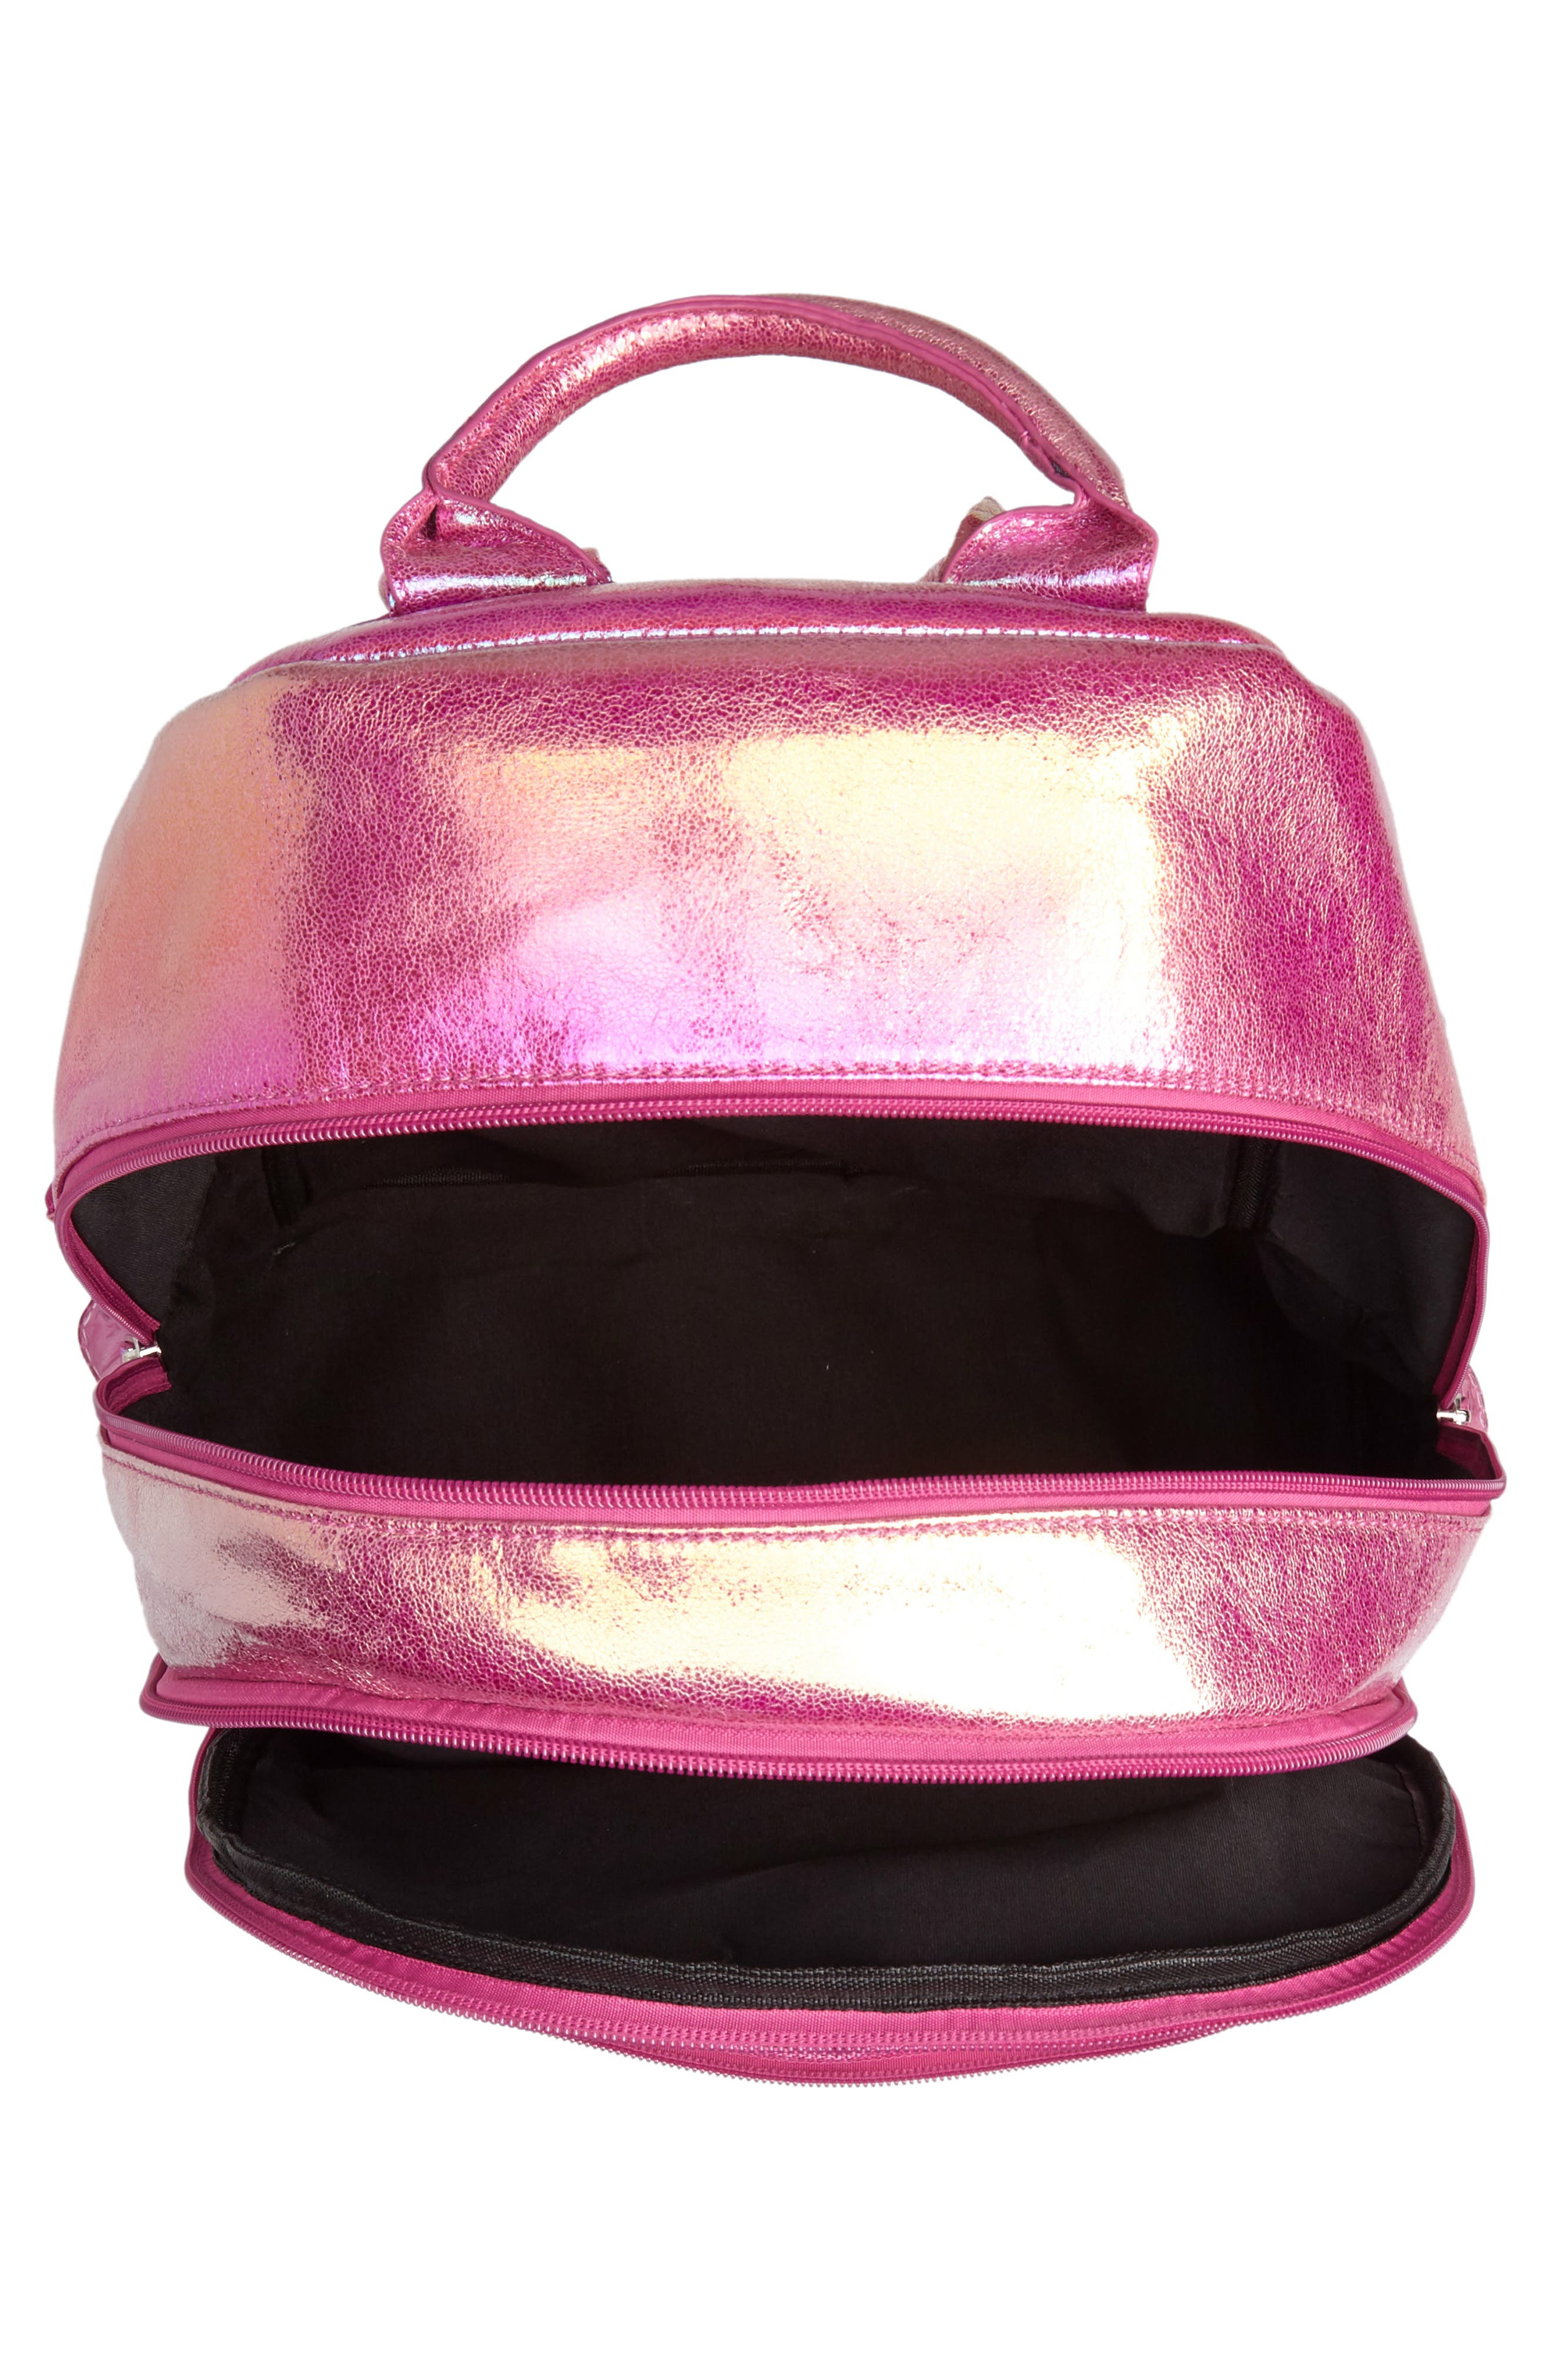 Heart Confetti Holographic Backpack,                             Alternate thumbnail 3, color,                             650